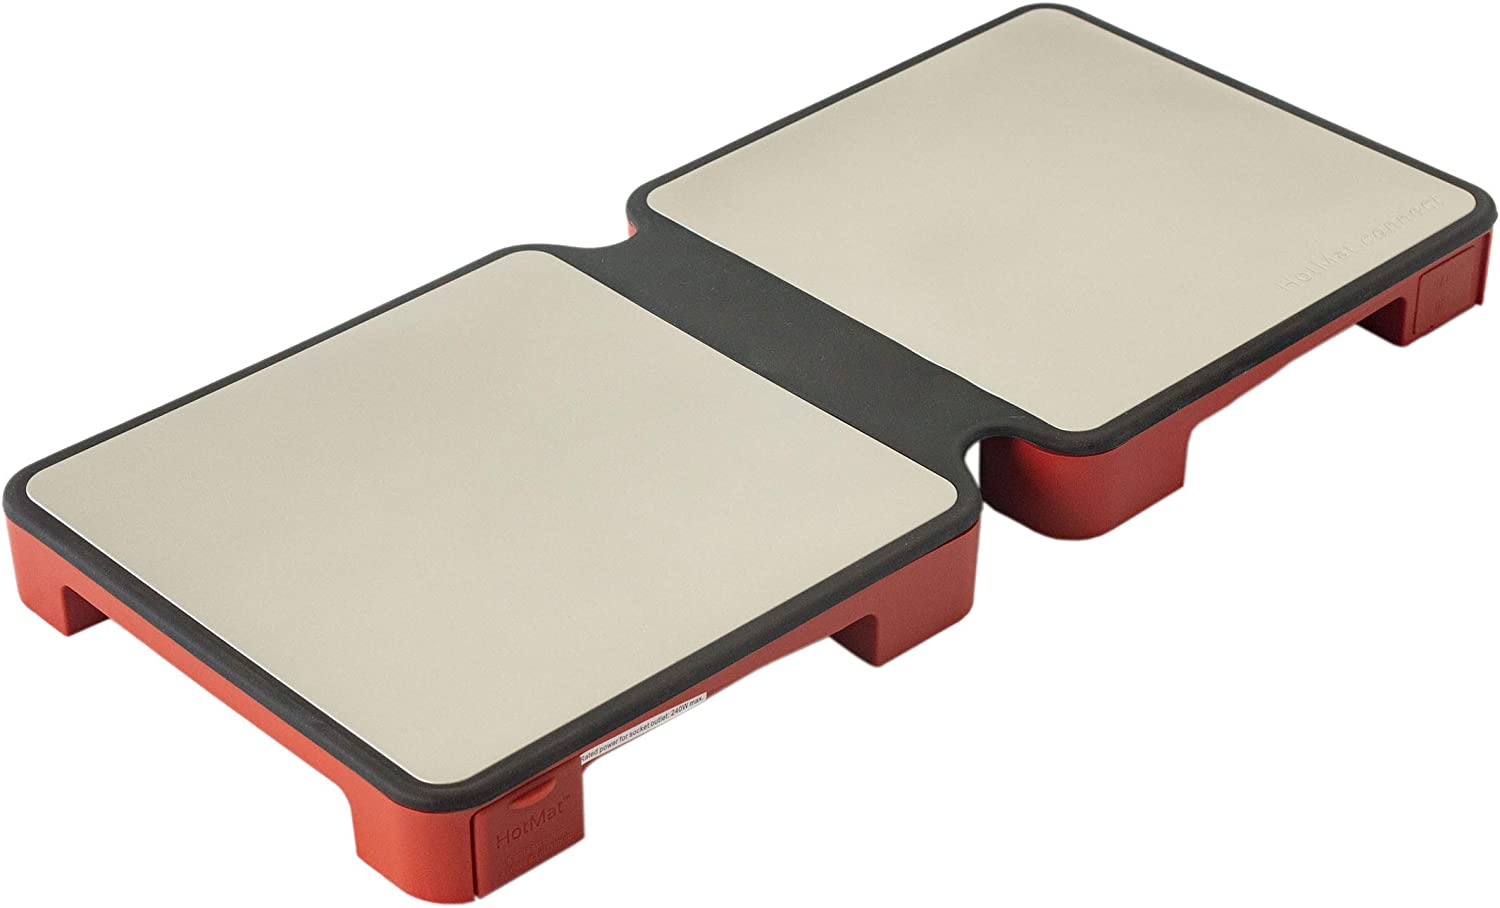 myhotmat Modular Electric Warming Tray | World's Only Two Dish Foldable Food Warmer With Adjustable Temperature Control | Lightweight, Easy-To-Store Kitchen Appliances (Red)